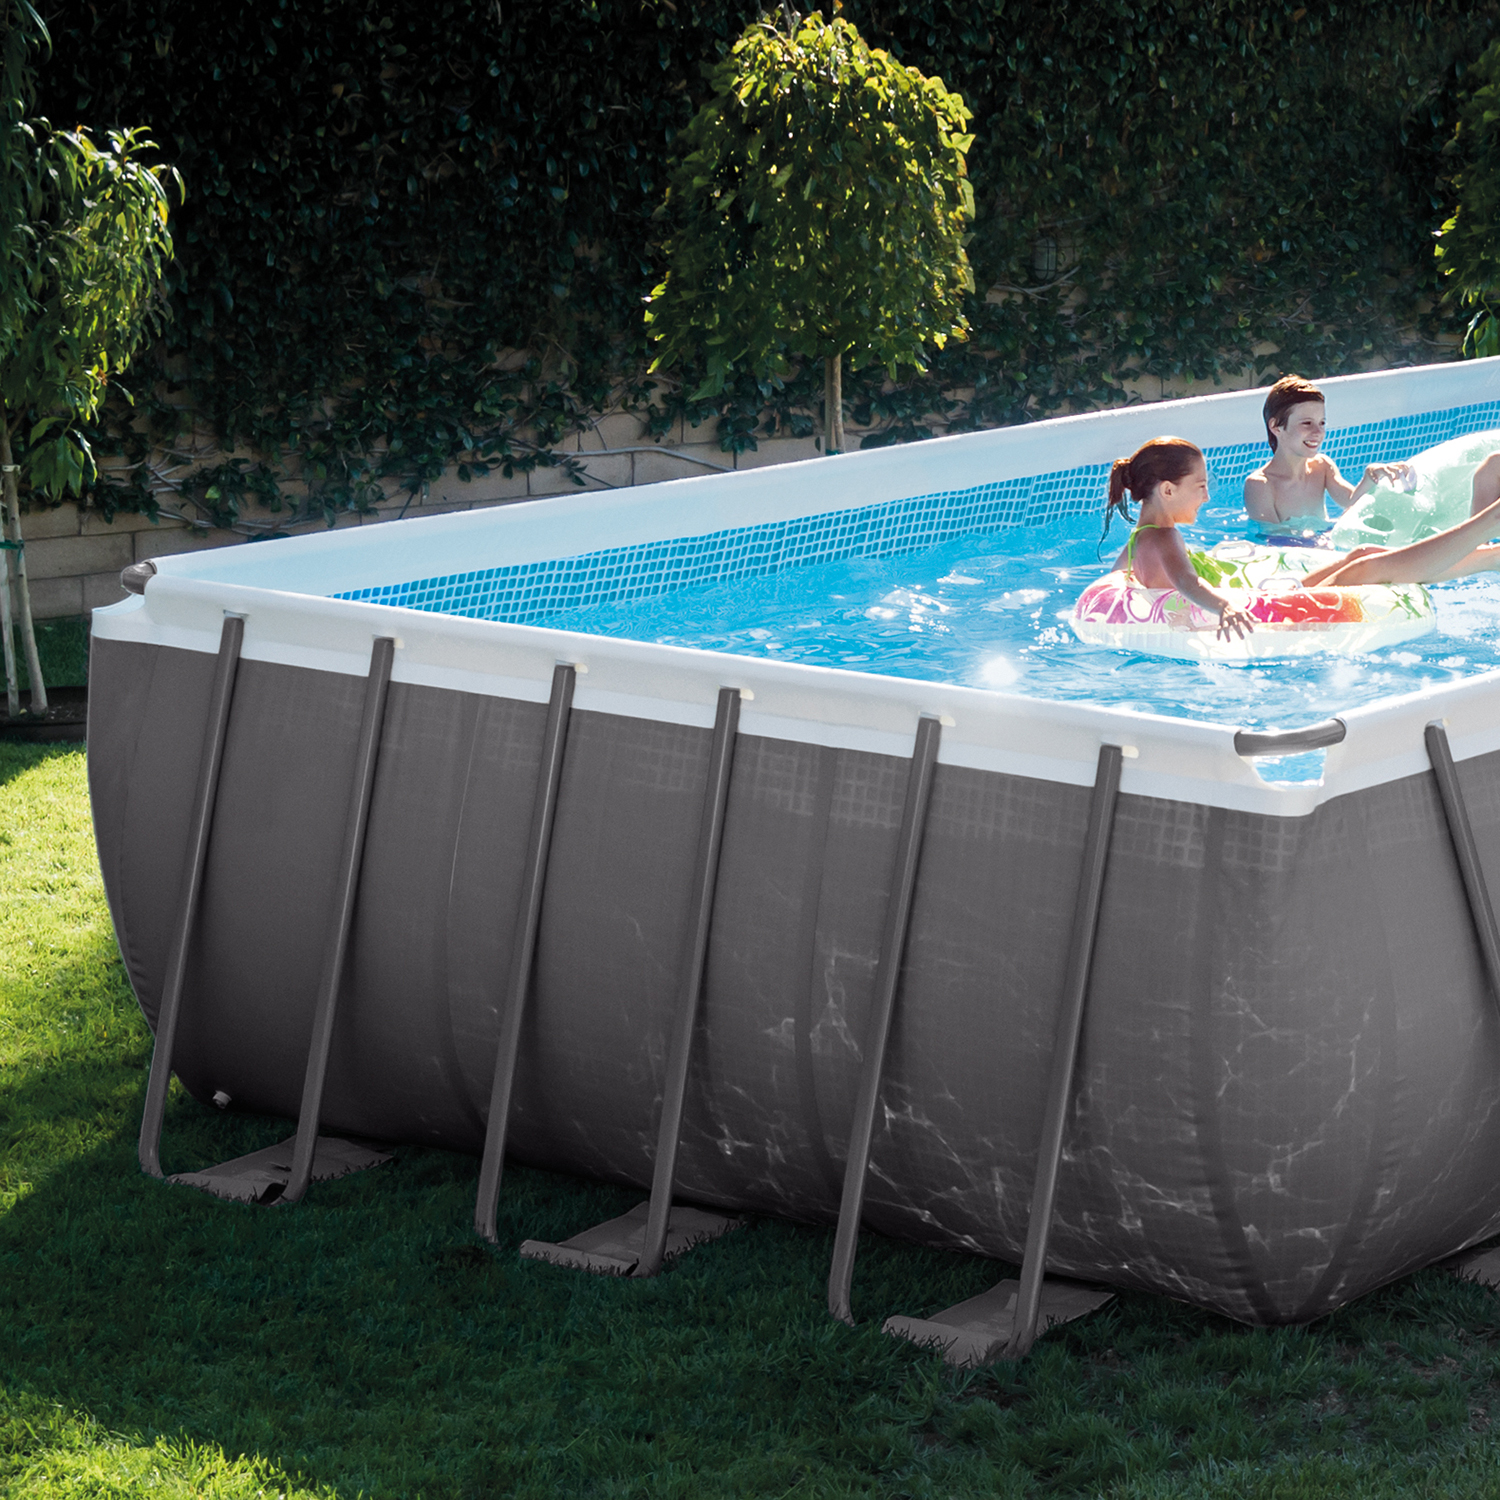 Intex 24 39 x 12 39 x 52 ultra frame rectangular swimming pool set 26361eh 752025961926 ebay for Intex rectangular swimming pool